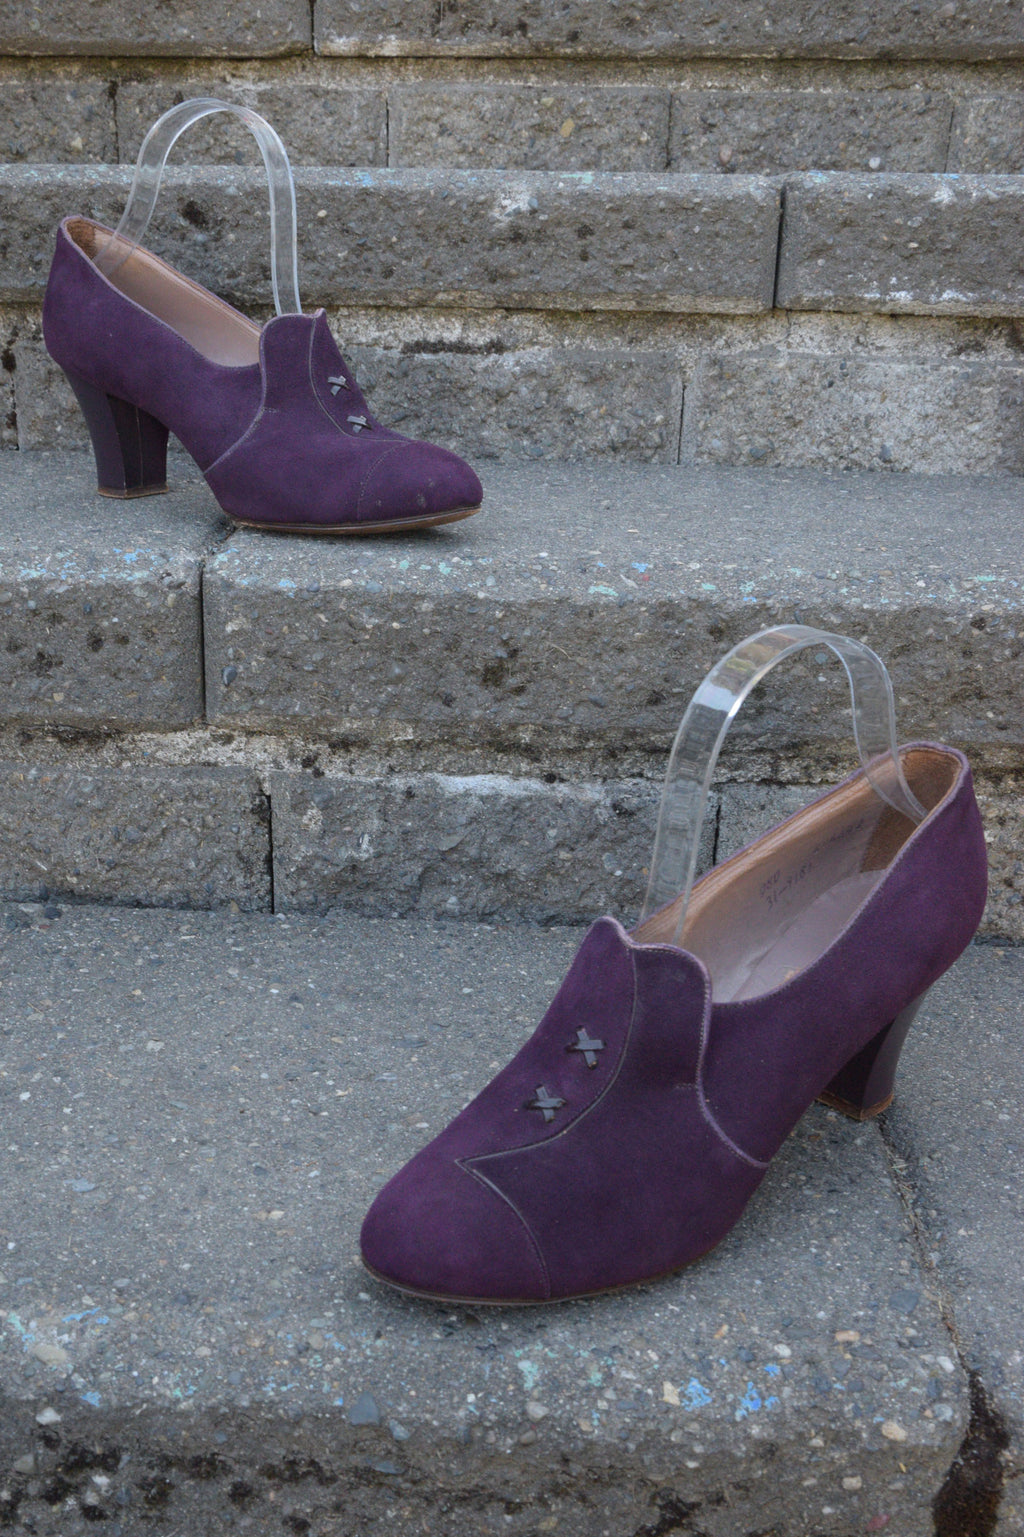 Gorgeous 1930s High Vamp Suede Pumps in Deep Purple Shoes Size 8 US